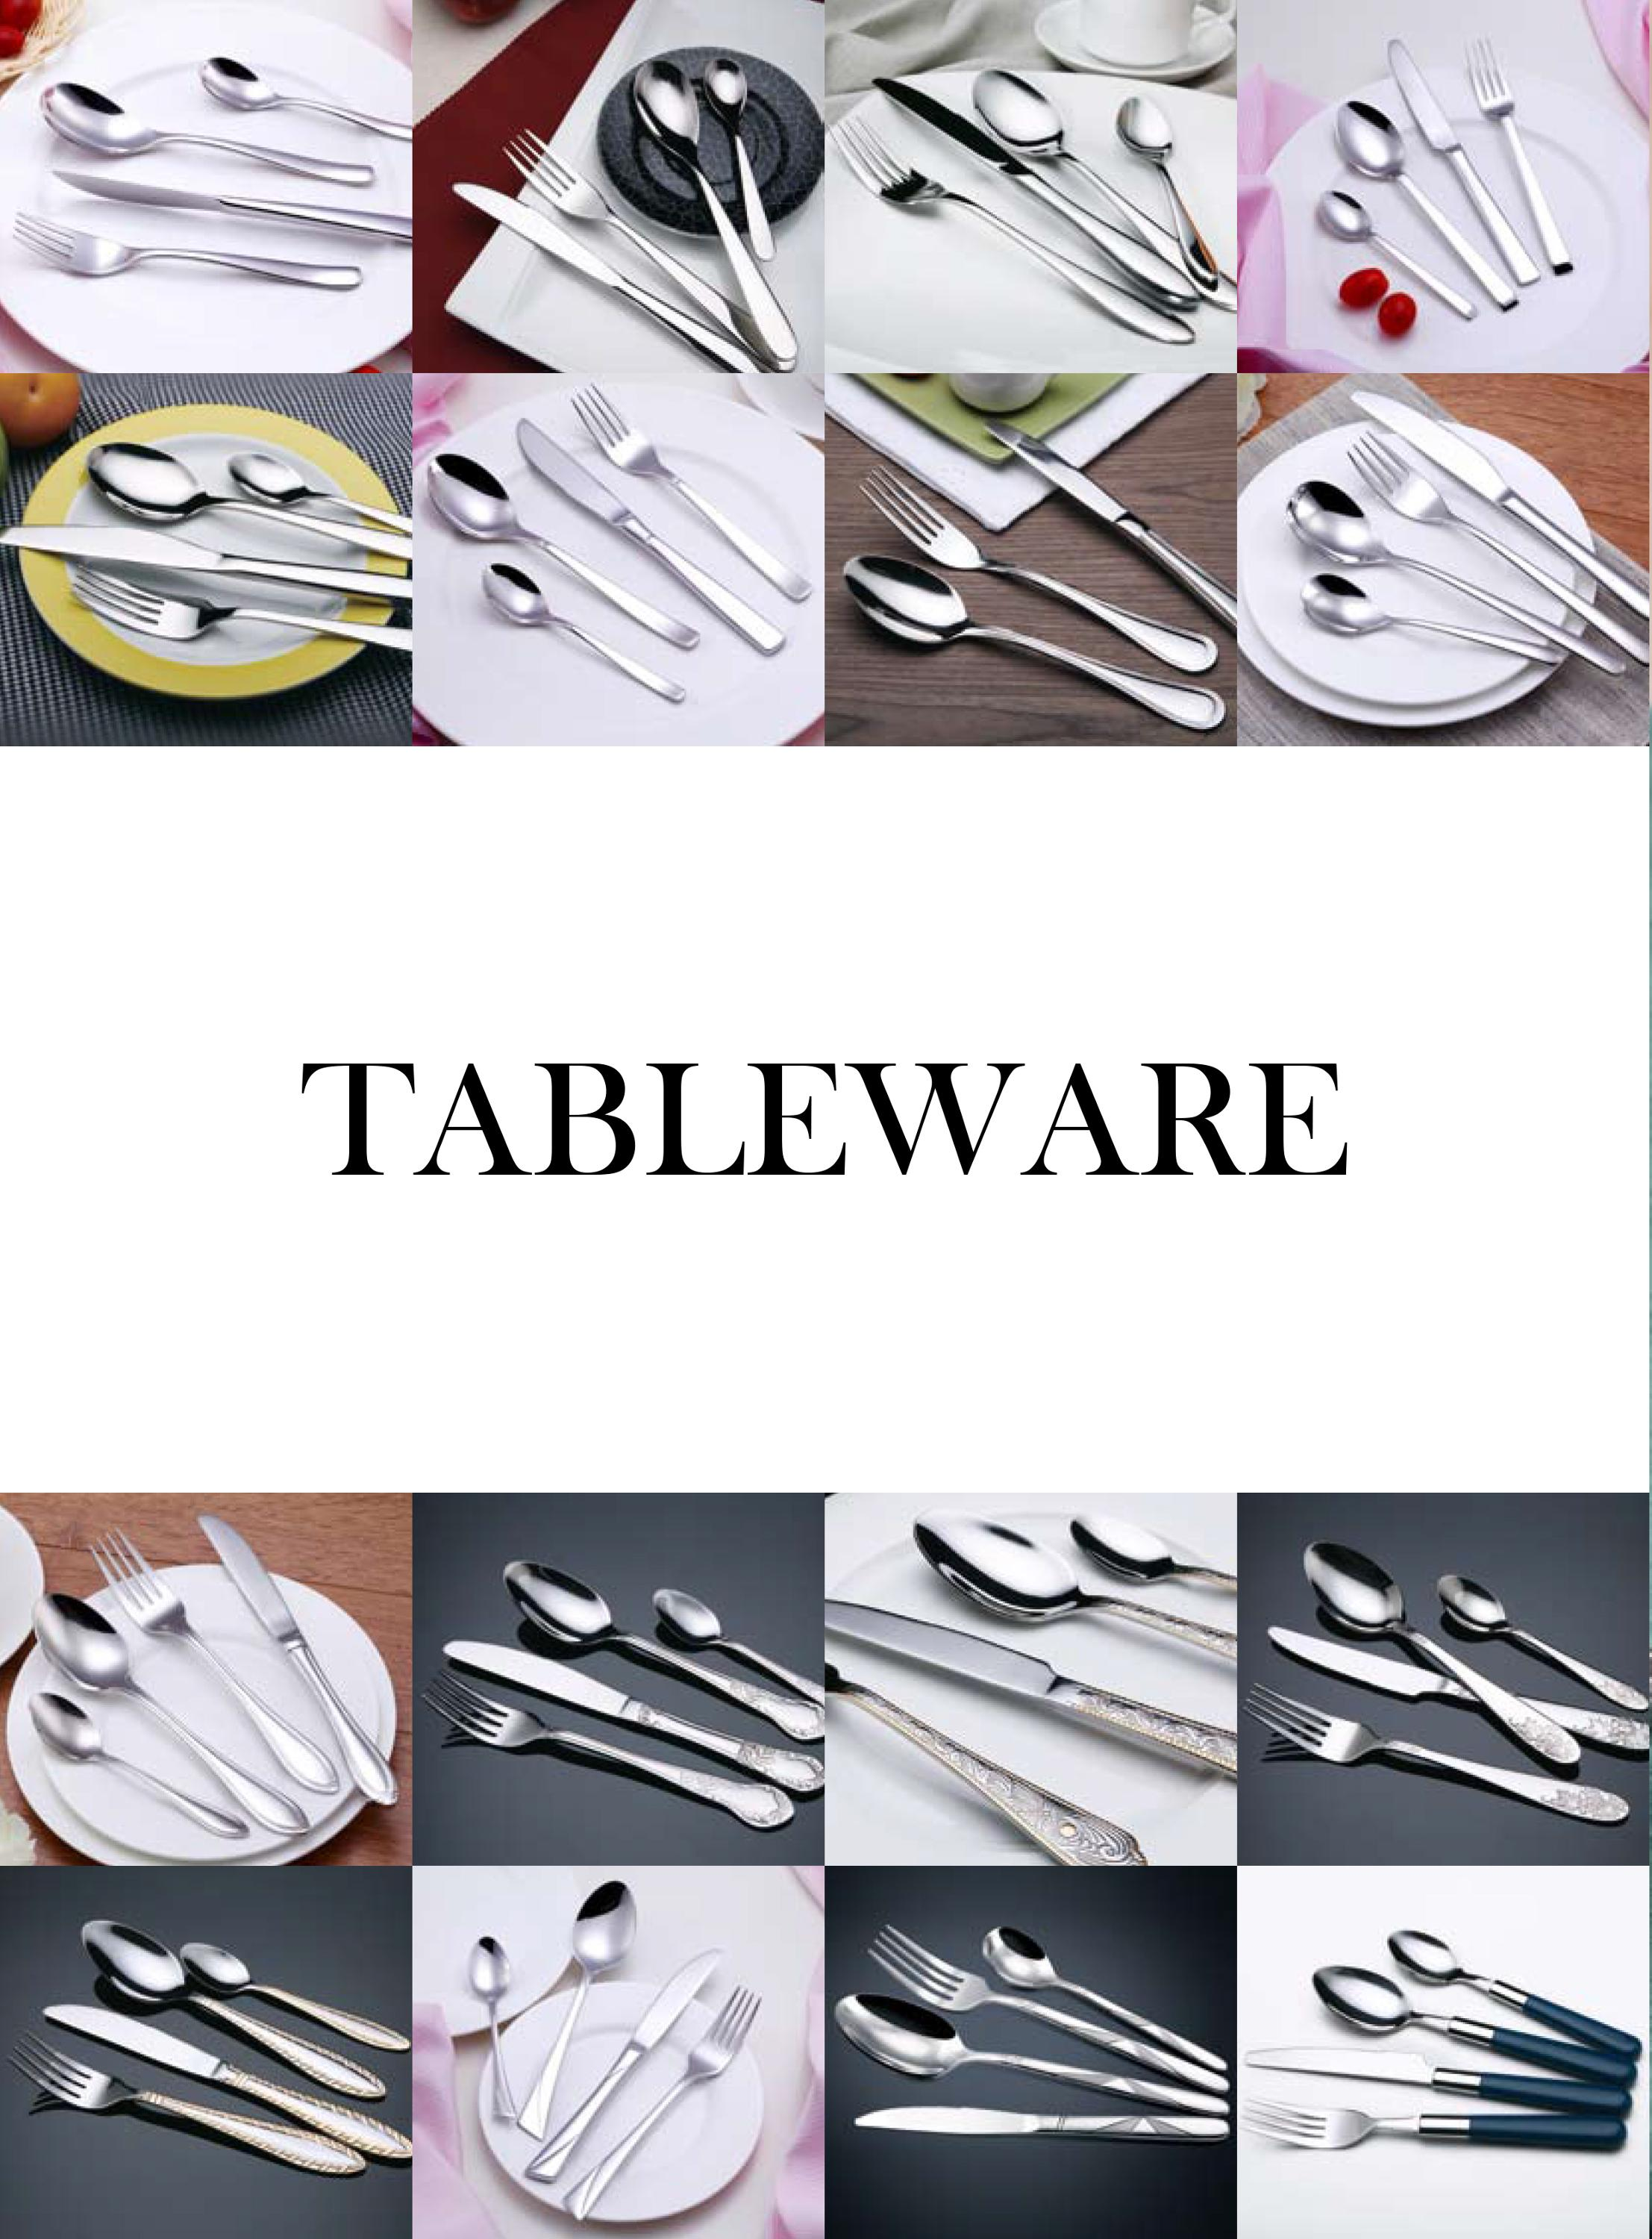 Guangzhou Hotel Restaurant Home Customized tableware Stainless Steel Spoon and Fork